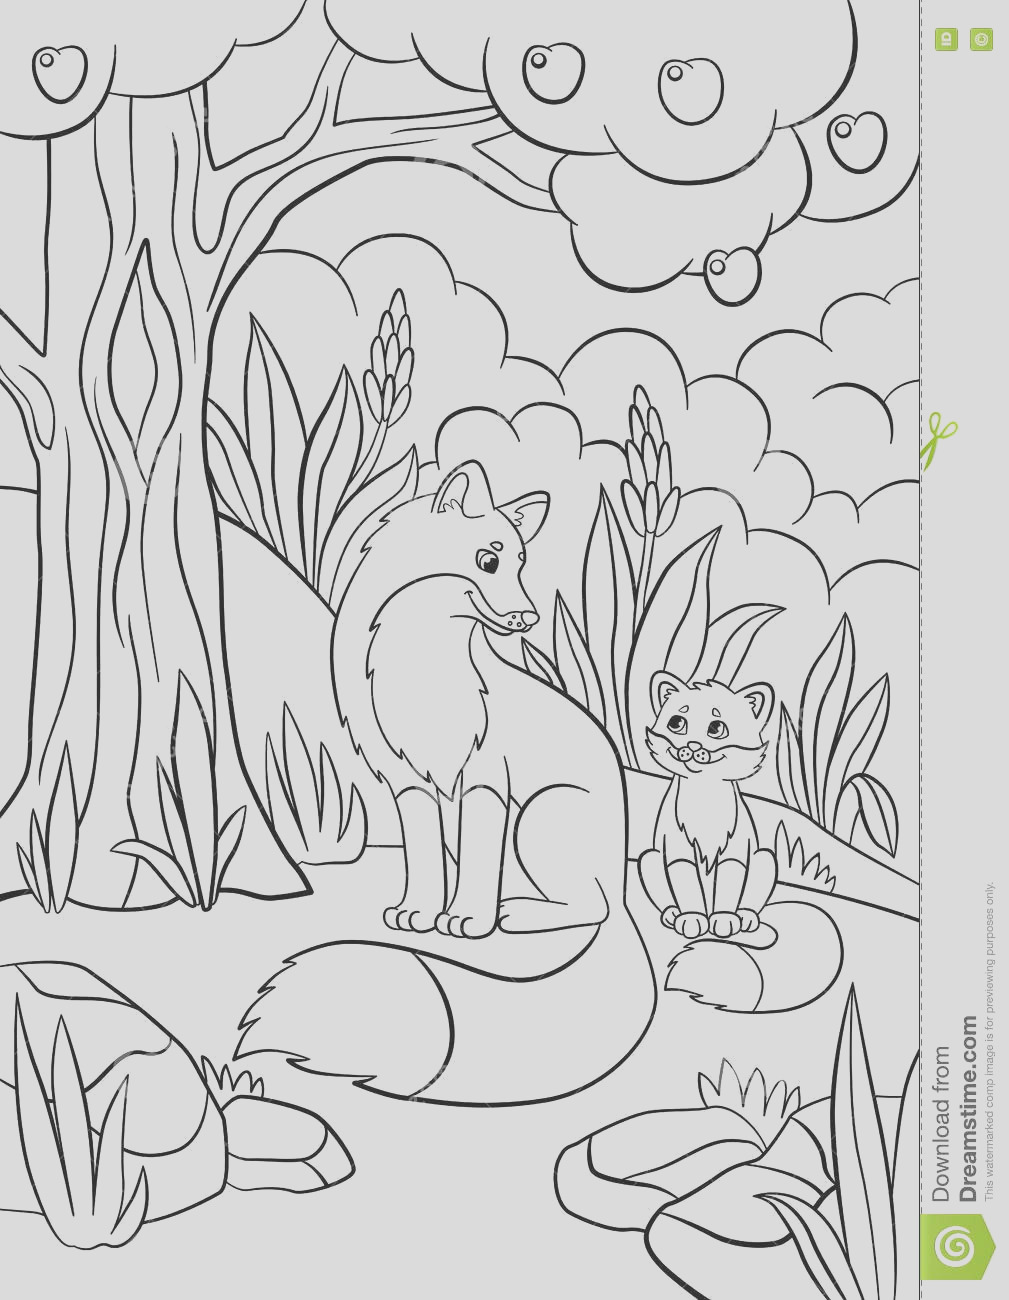 stock illustration coloring pages wild animals mother fox her little cute baby forest image